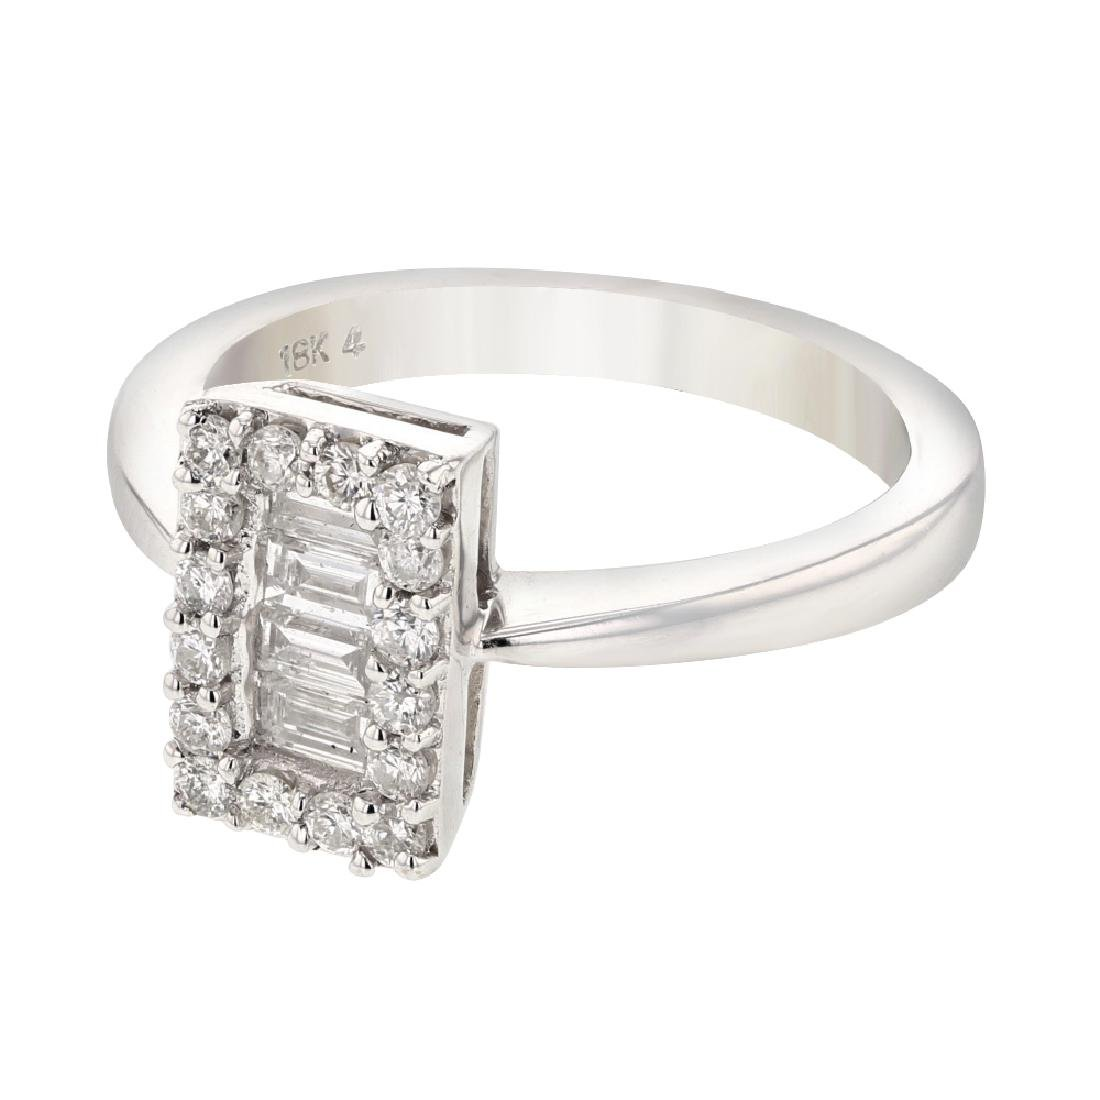 18K WhiteGold 0.6CTW Baguette Fashion Ring